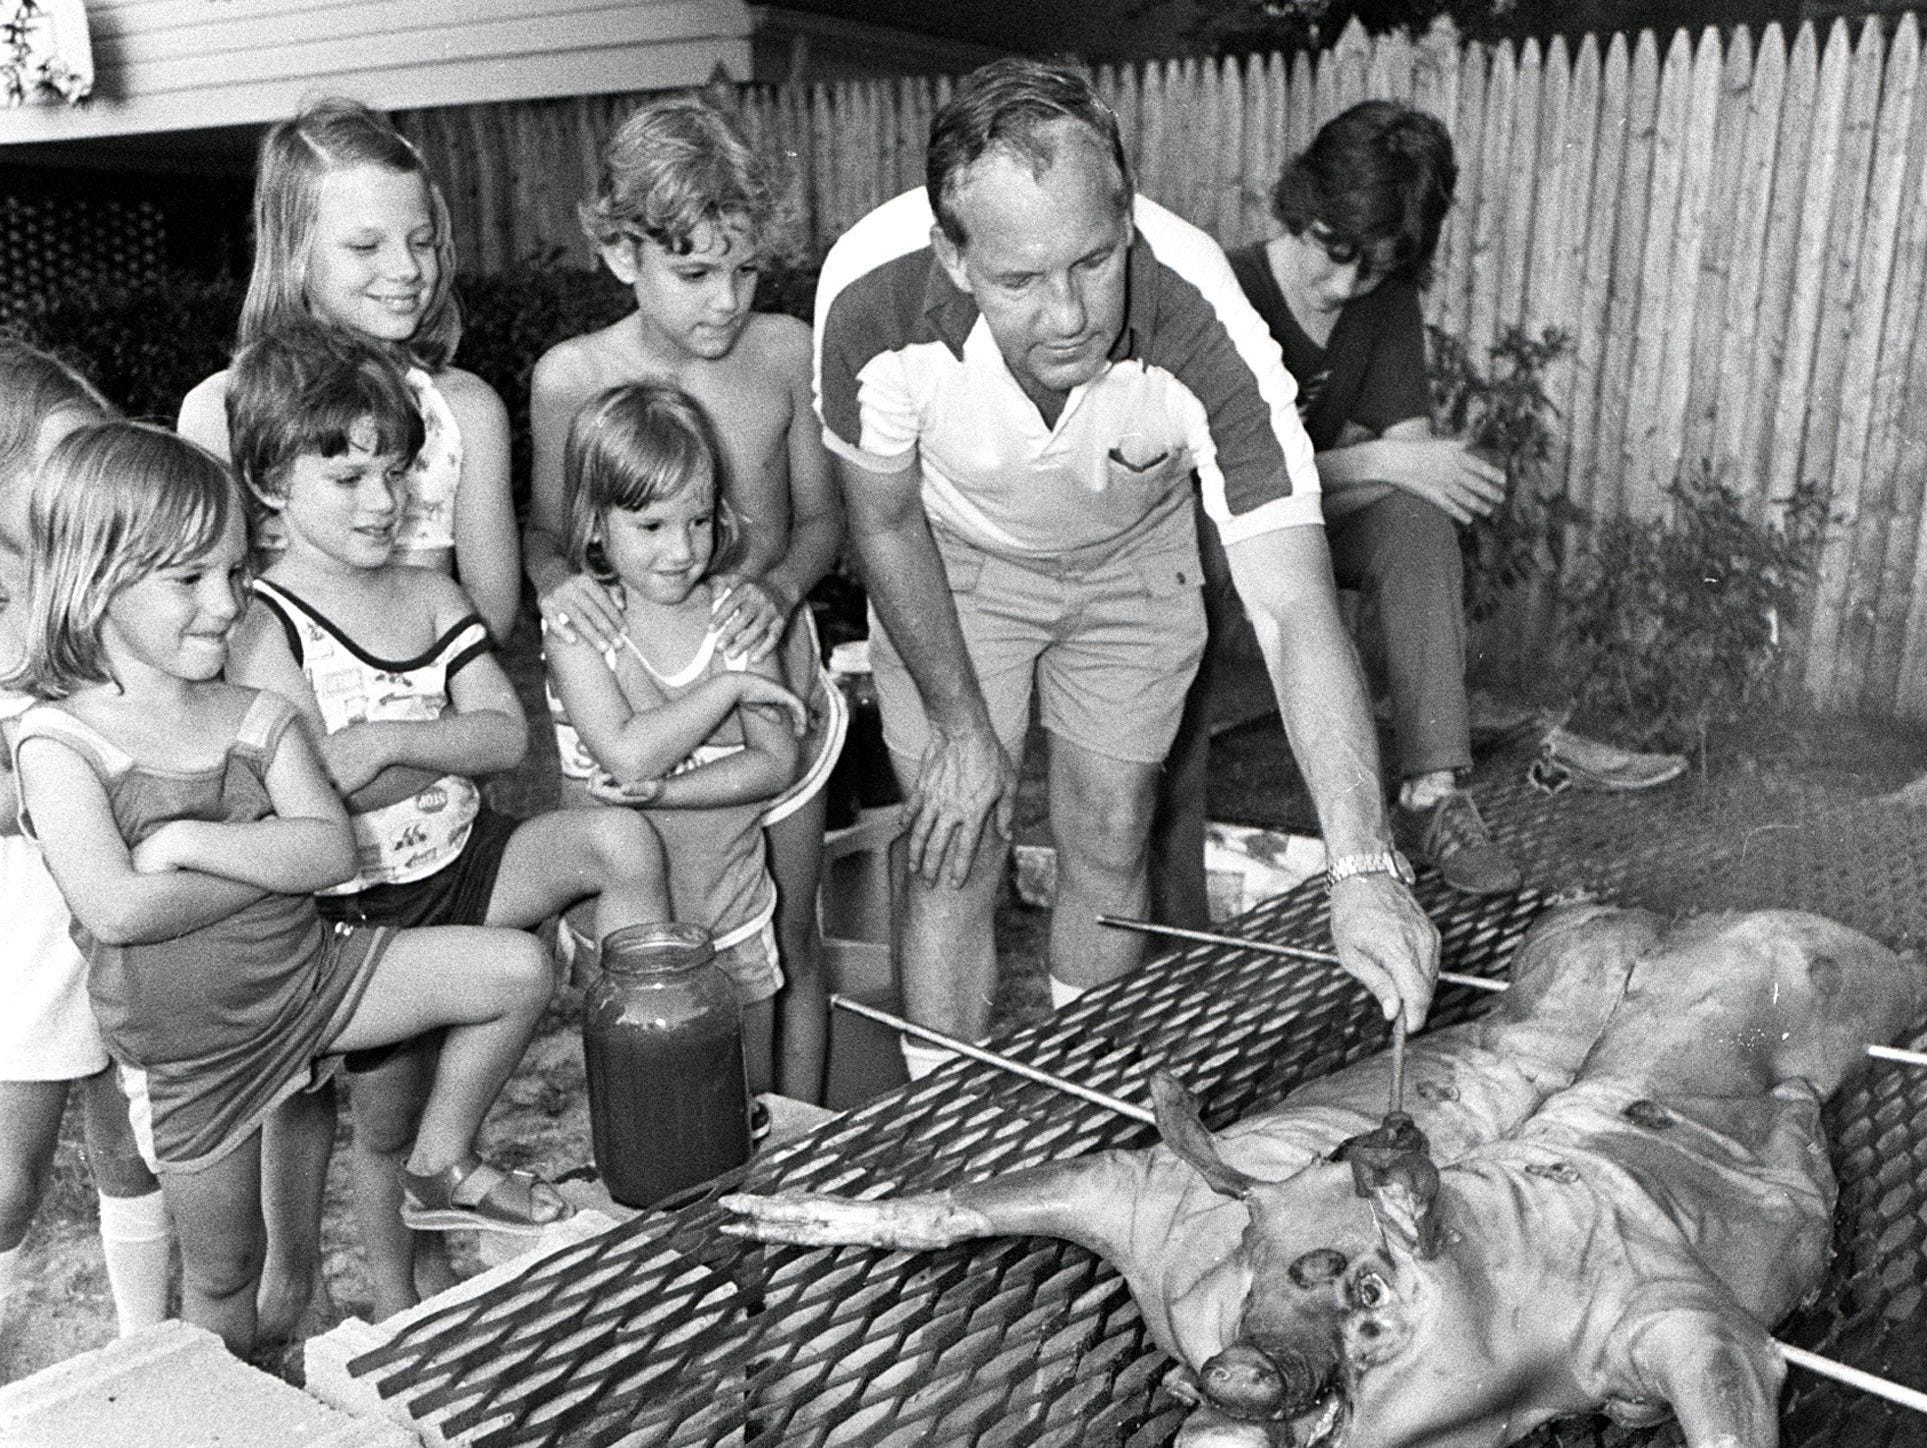 Royce Long of 5343 Keatswood Drive displays for neighborhood children the proper basting touch on 3 Jul 1979 as he prepares a pig for roasting. The pig, which weighed about 100 pounds, will cook for 18 to 24 hours before being served as an Independence Day meal for about 75 people. Royce says it will take 150 pounds of charcoal and four gallons of barbecue sauce before it is finished. Neighbors were to take turns turning and basting the pig overnight. The pit is in the yard of Jerry Todd at 5323 Keatswood Drive.